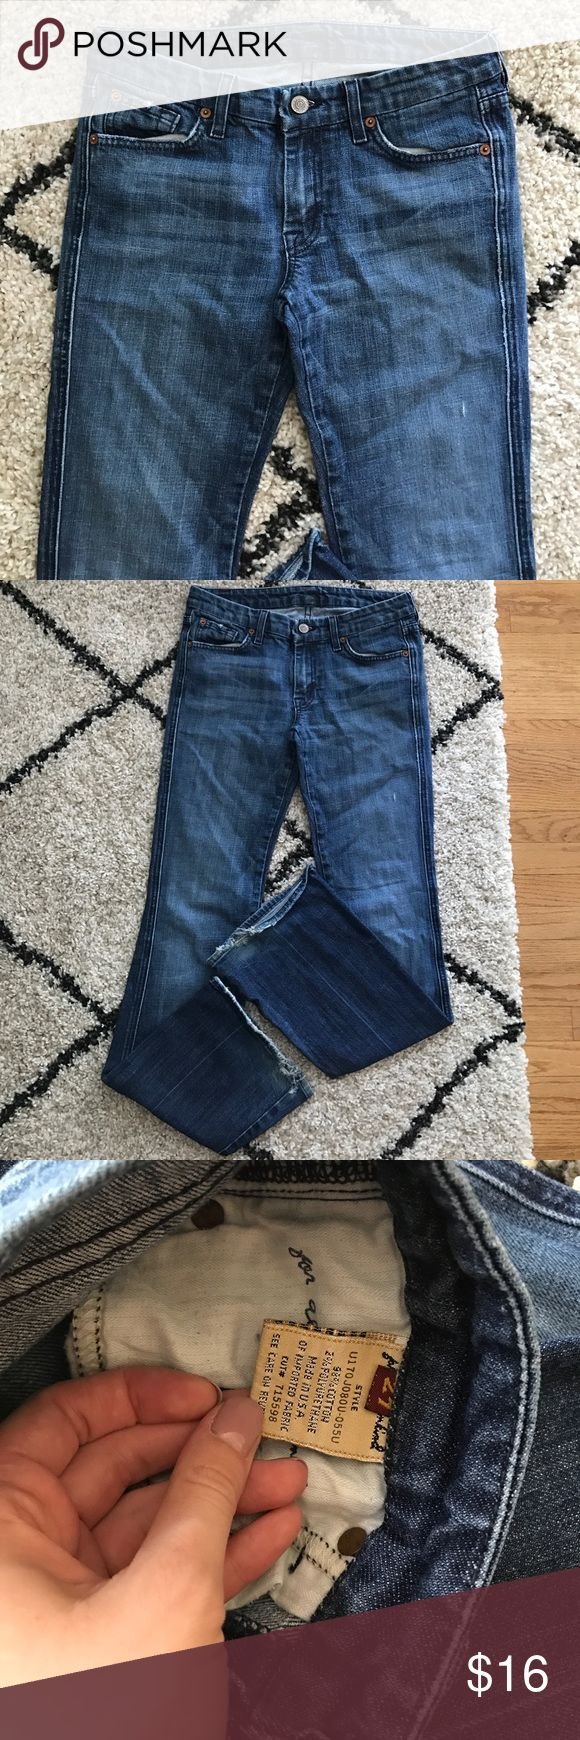 Women's designer jeans! 7 for all mankind women's jeans size 27. Boot cut flare. Good condition! 7 For All Mankind Jeans